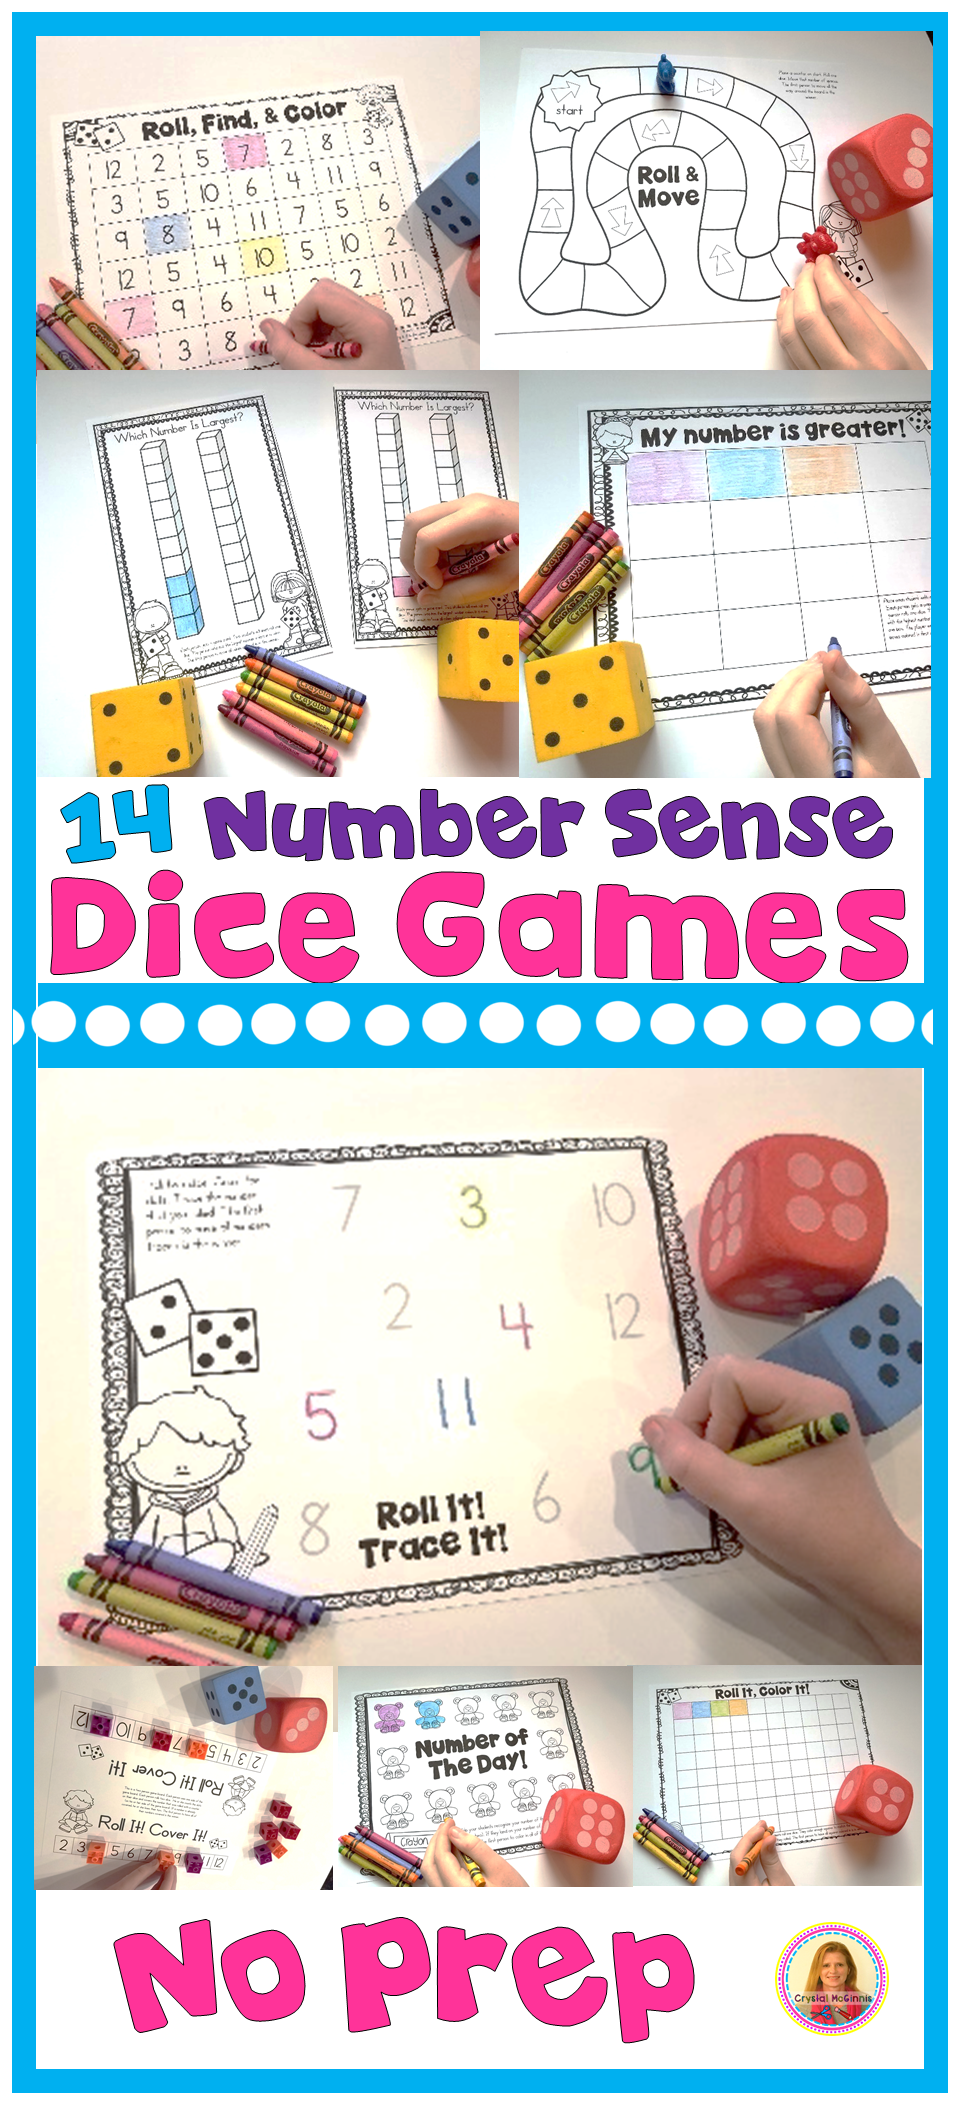 All You Need Are Dice 14 Number Sense Math Center Dice Games Kindergarten Math Games Dice Math Games Kindergarten Games